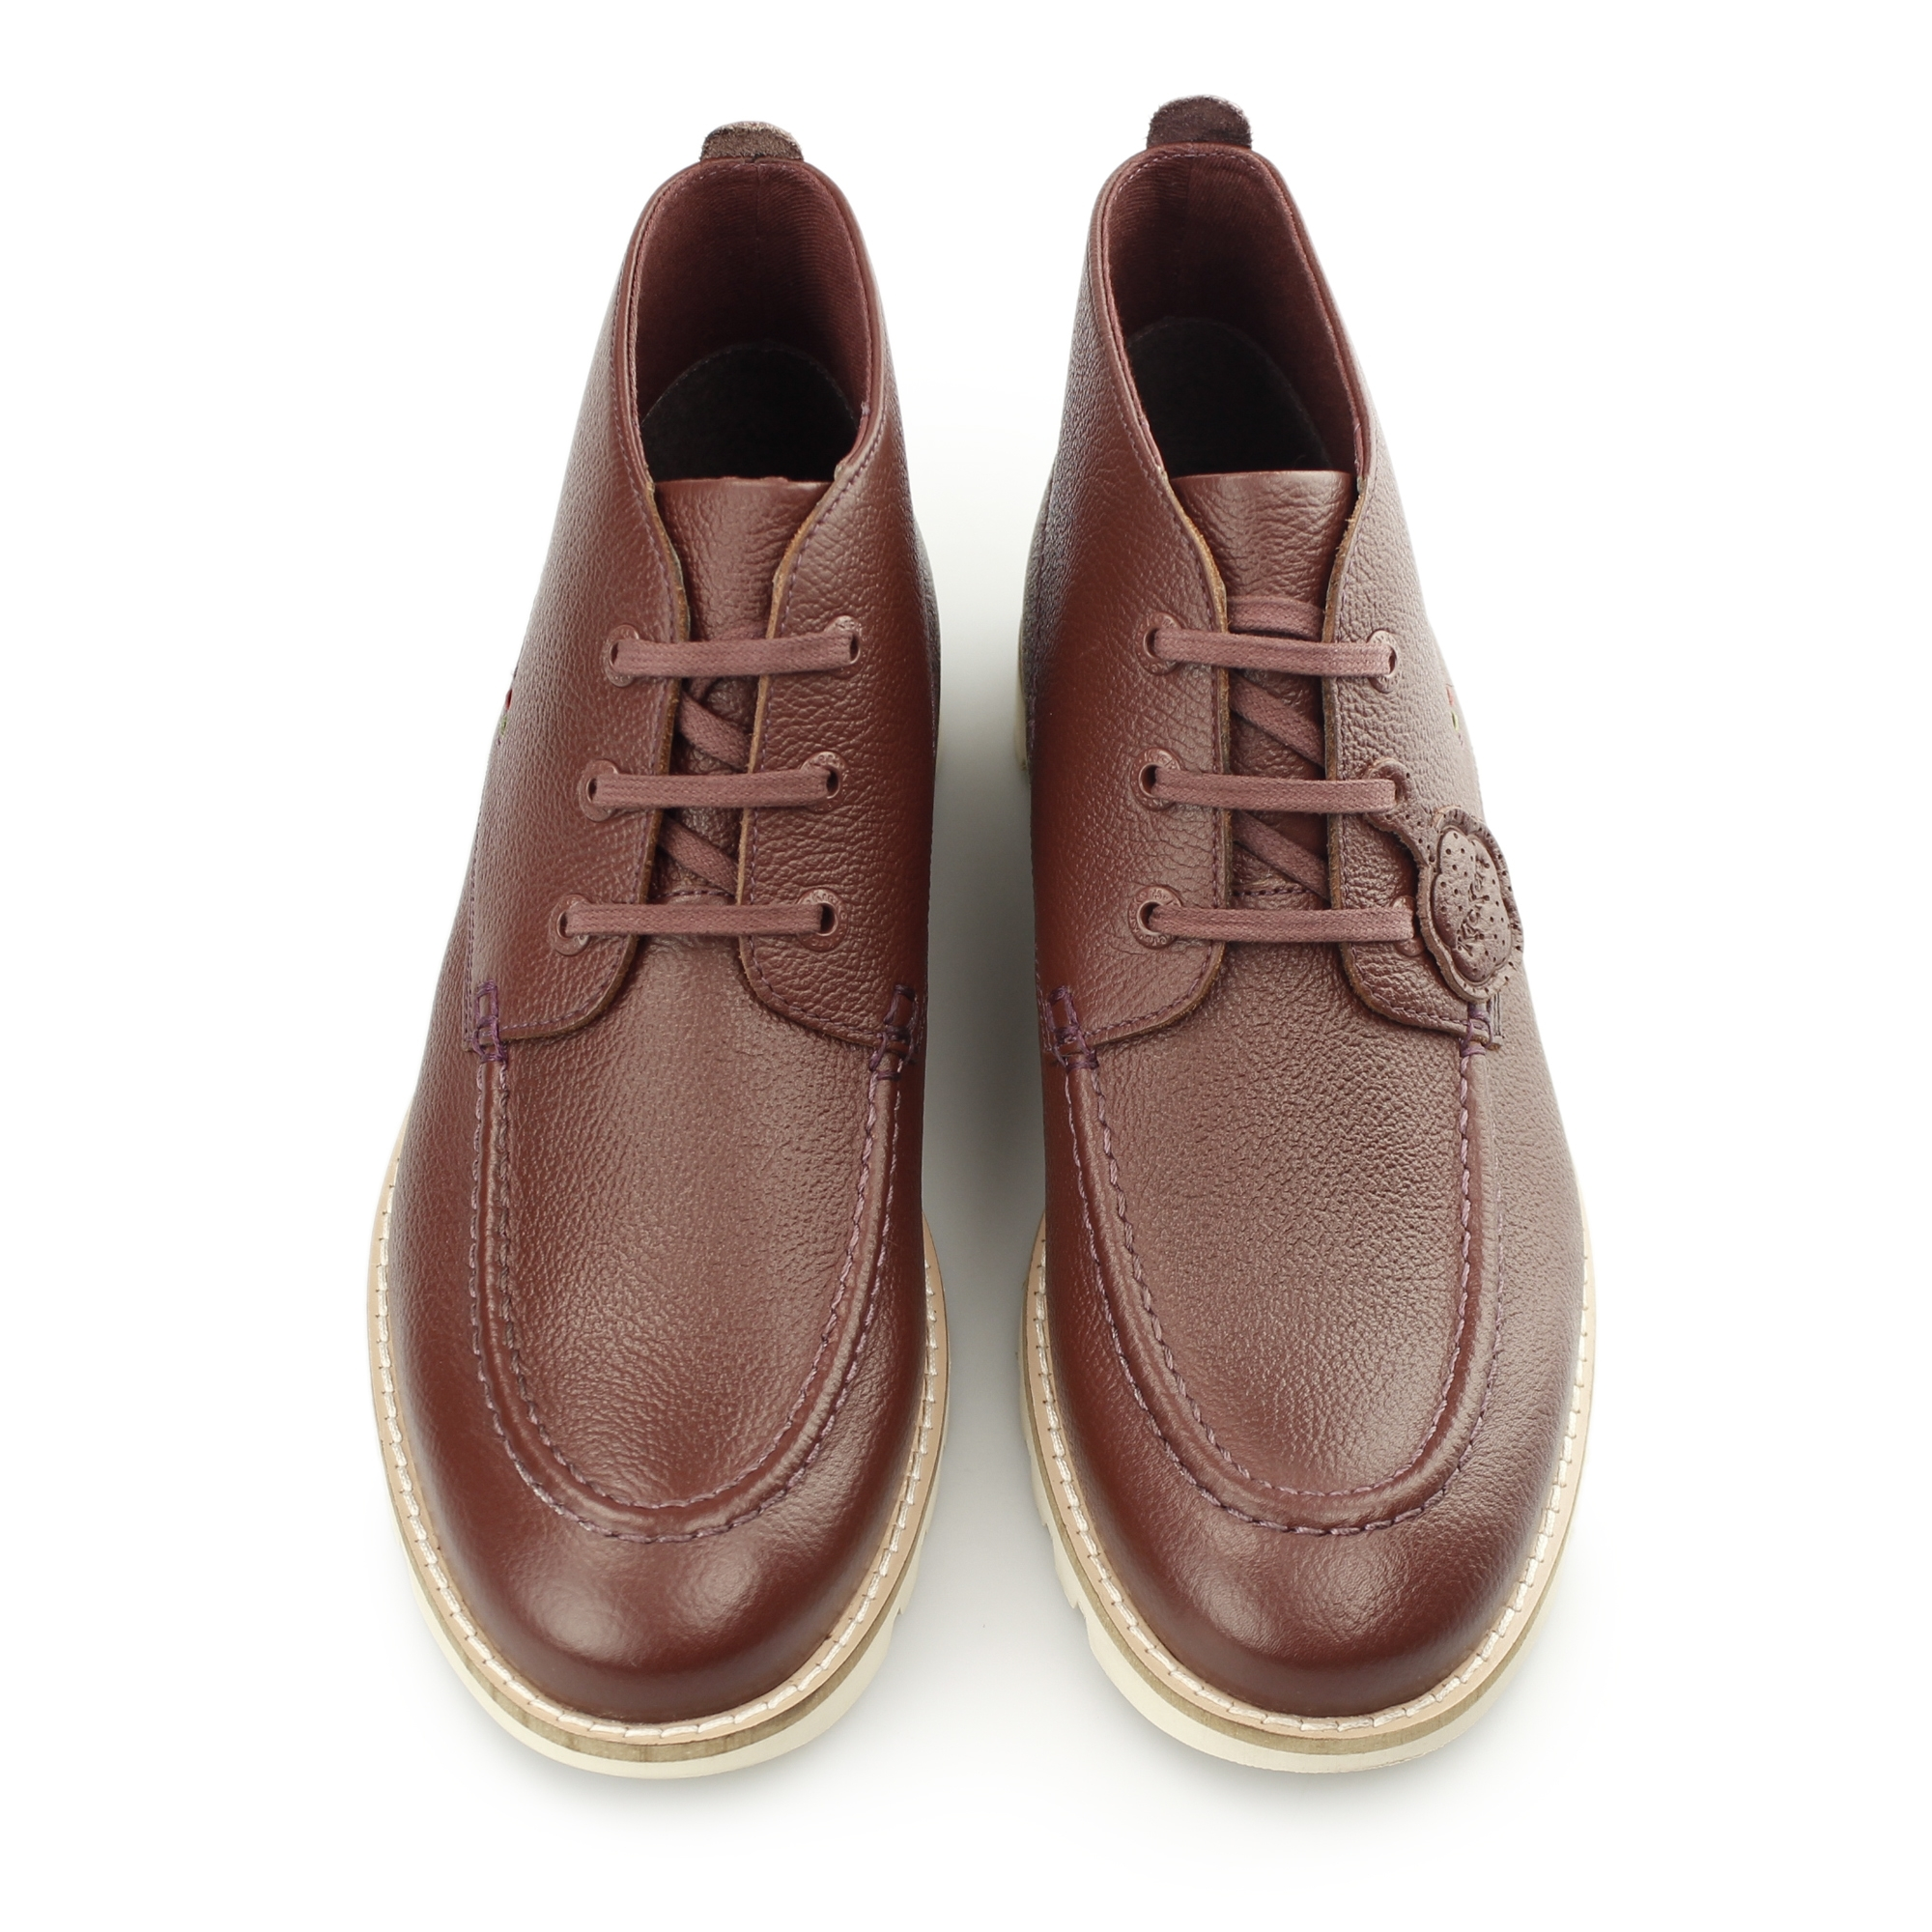 kickers kymbo mocc mens leather lace up casual comfy